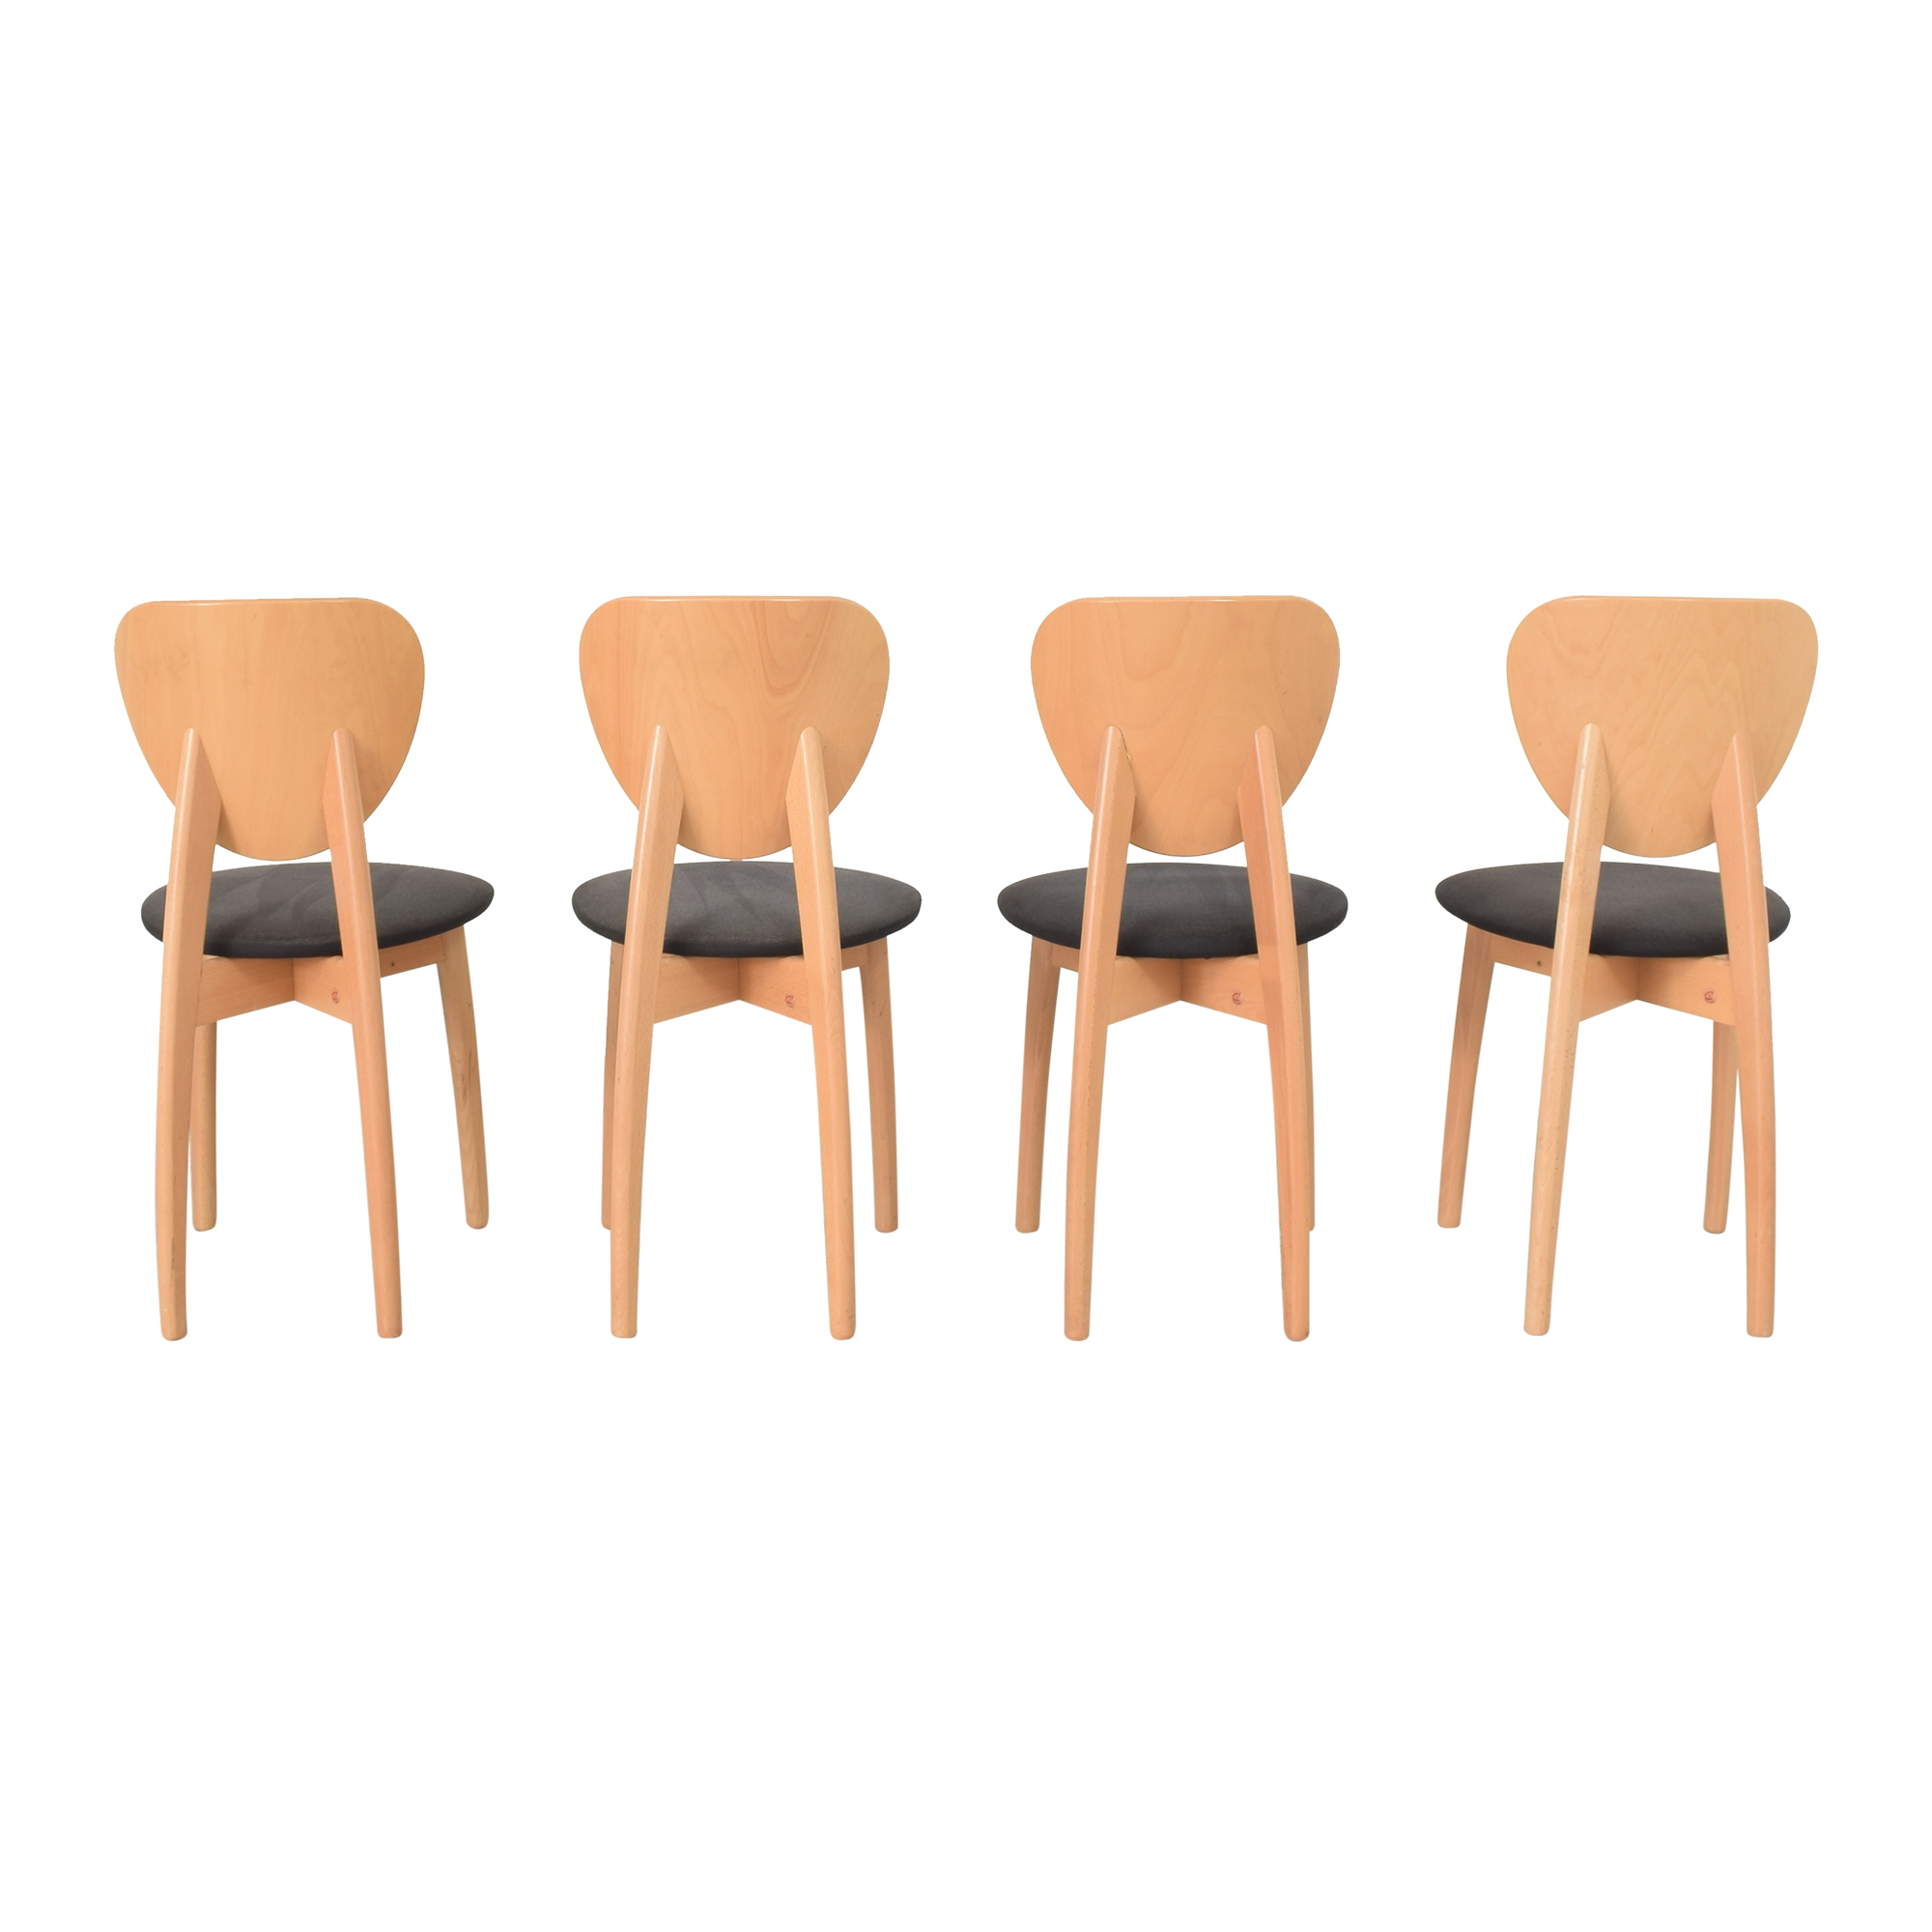 Calligaris Calligaris Modern Dining Chairs ma